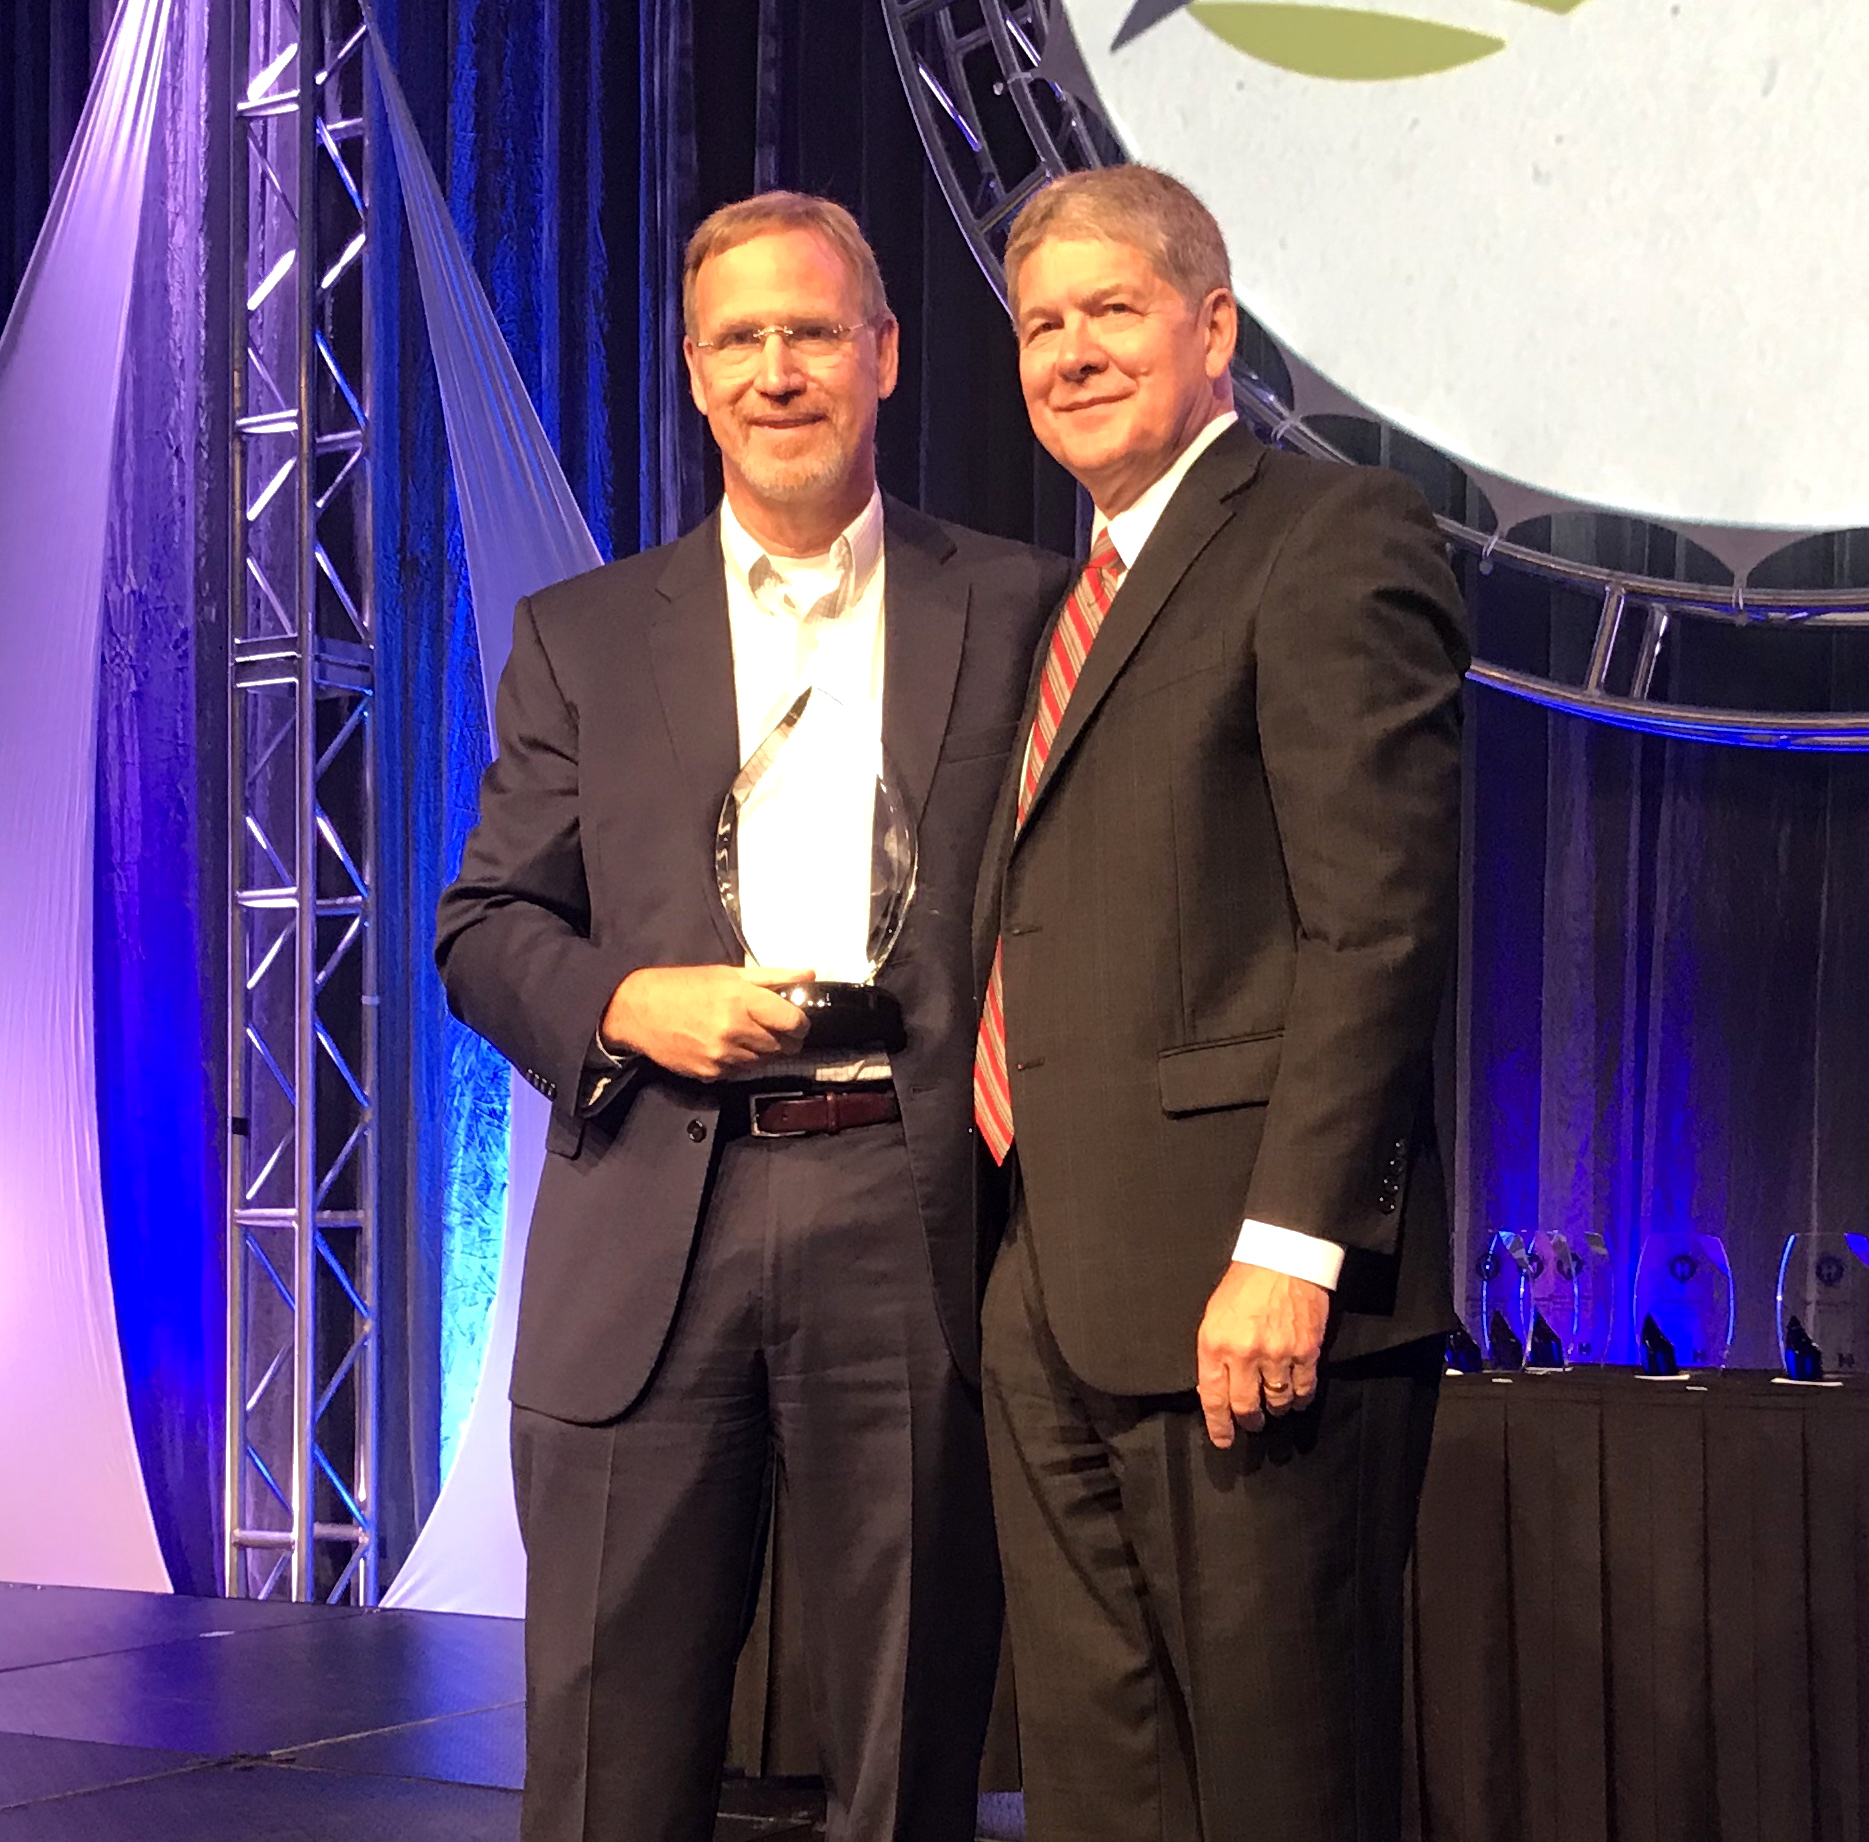 Boone County Hospital CEO, Joe Smith, being presented the 2018 Iowa Hospital Assocation Excellence in Leadership Award.